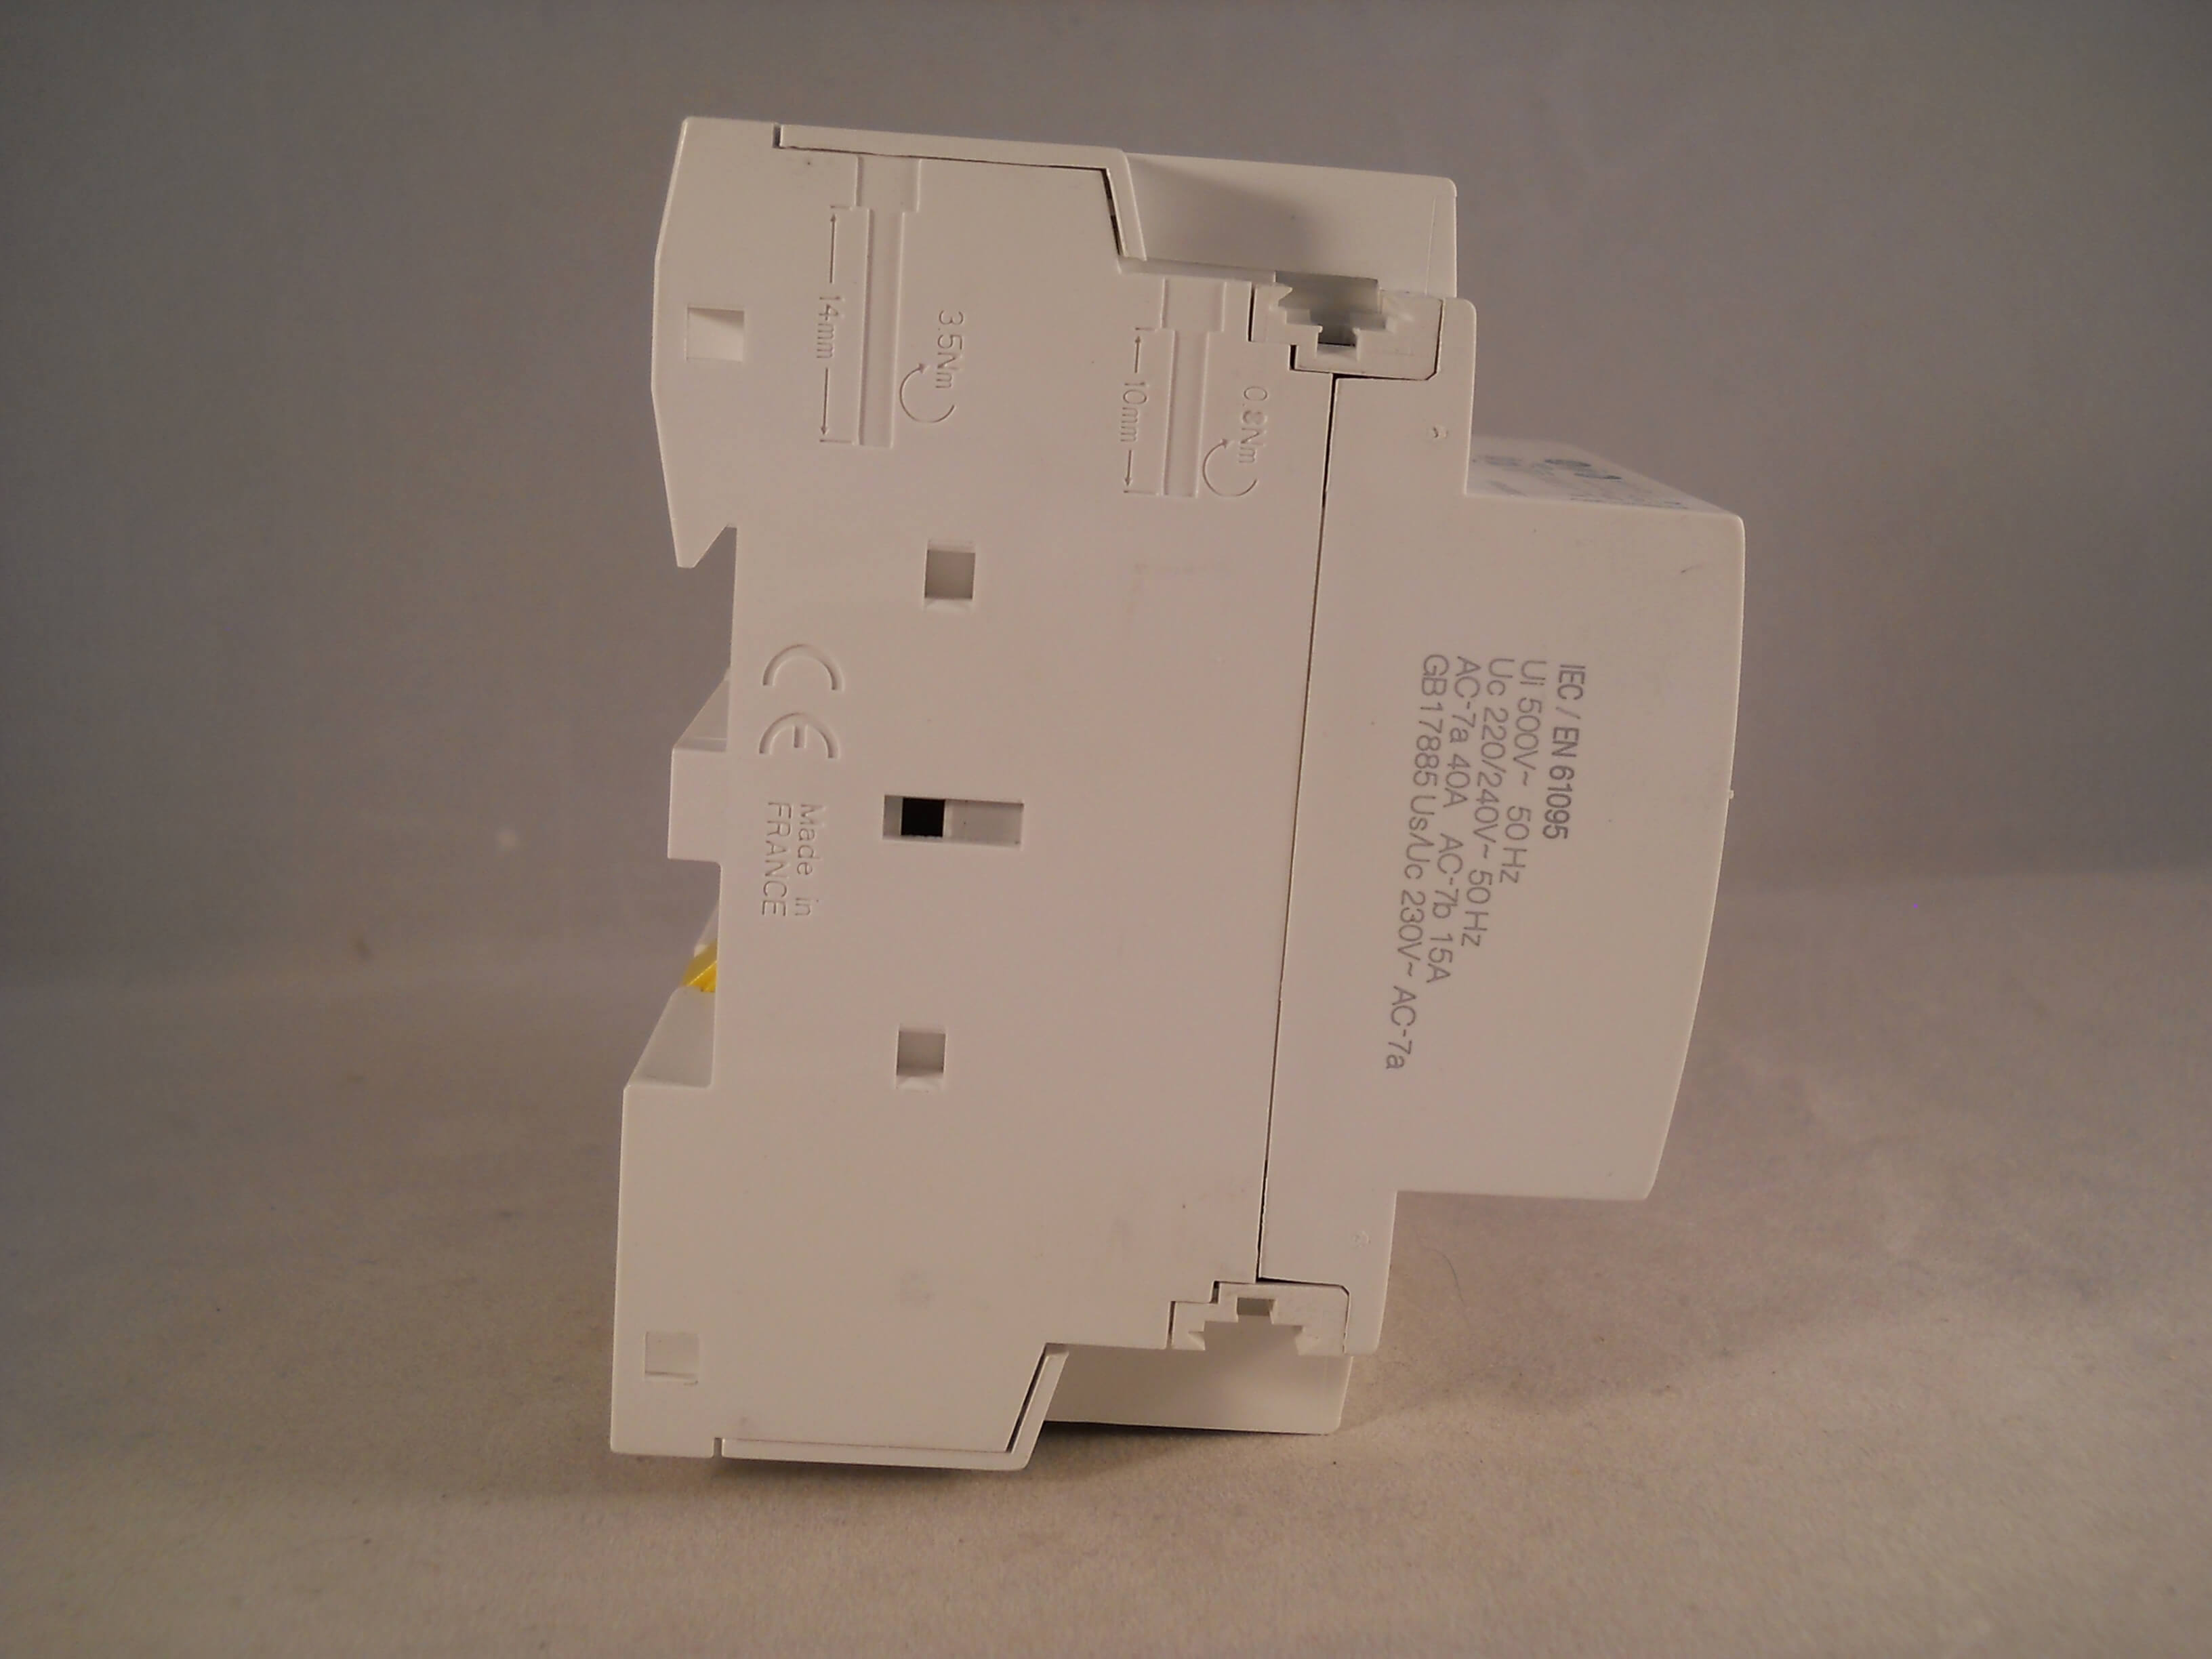 schneider ict 25a contactor wiring diagram fisher paykel dishwasher parts 40 amp 4 pole 240vac coil n o acti 9